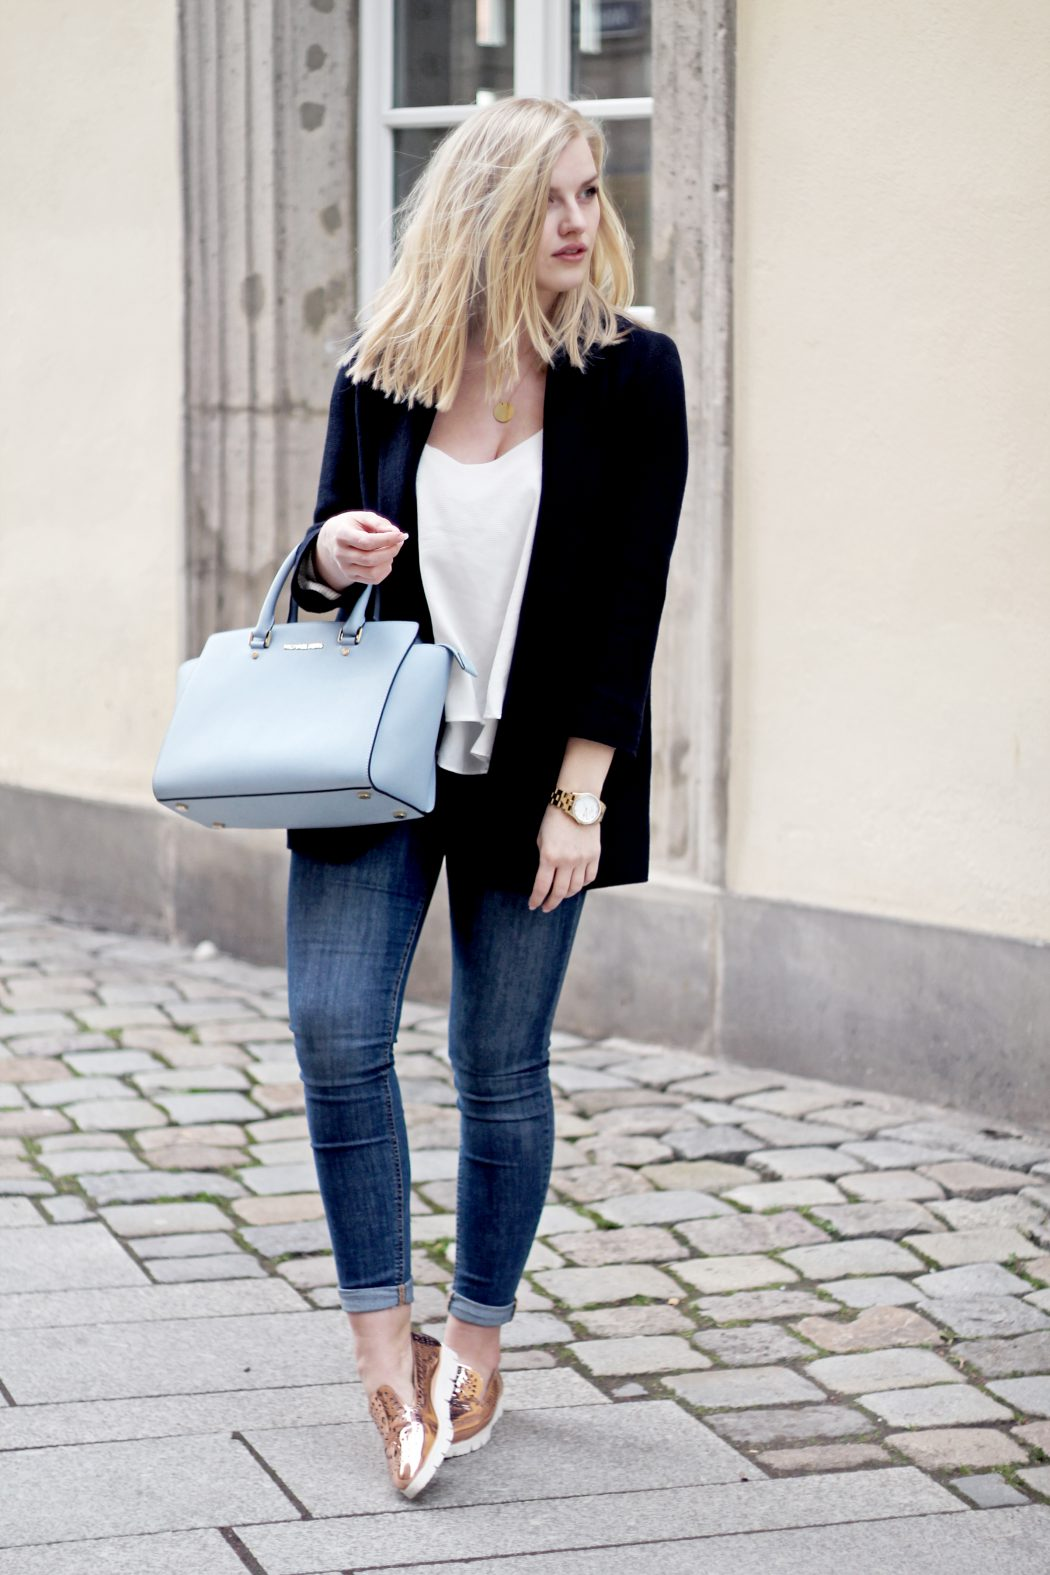 metallic shoes fashionblogger blogger ootd outfit german fashion